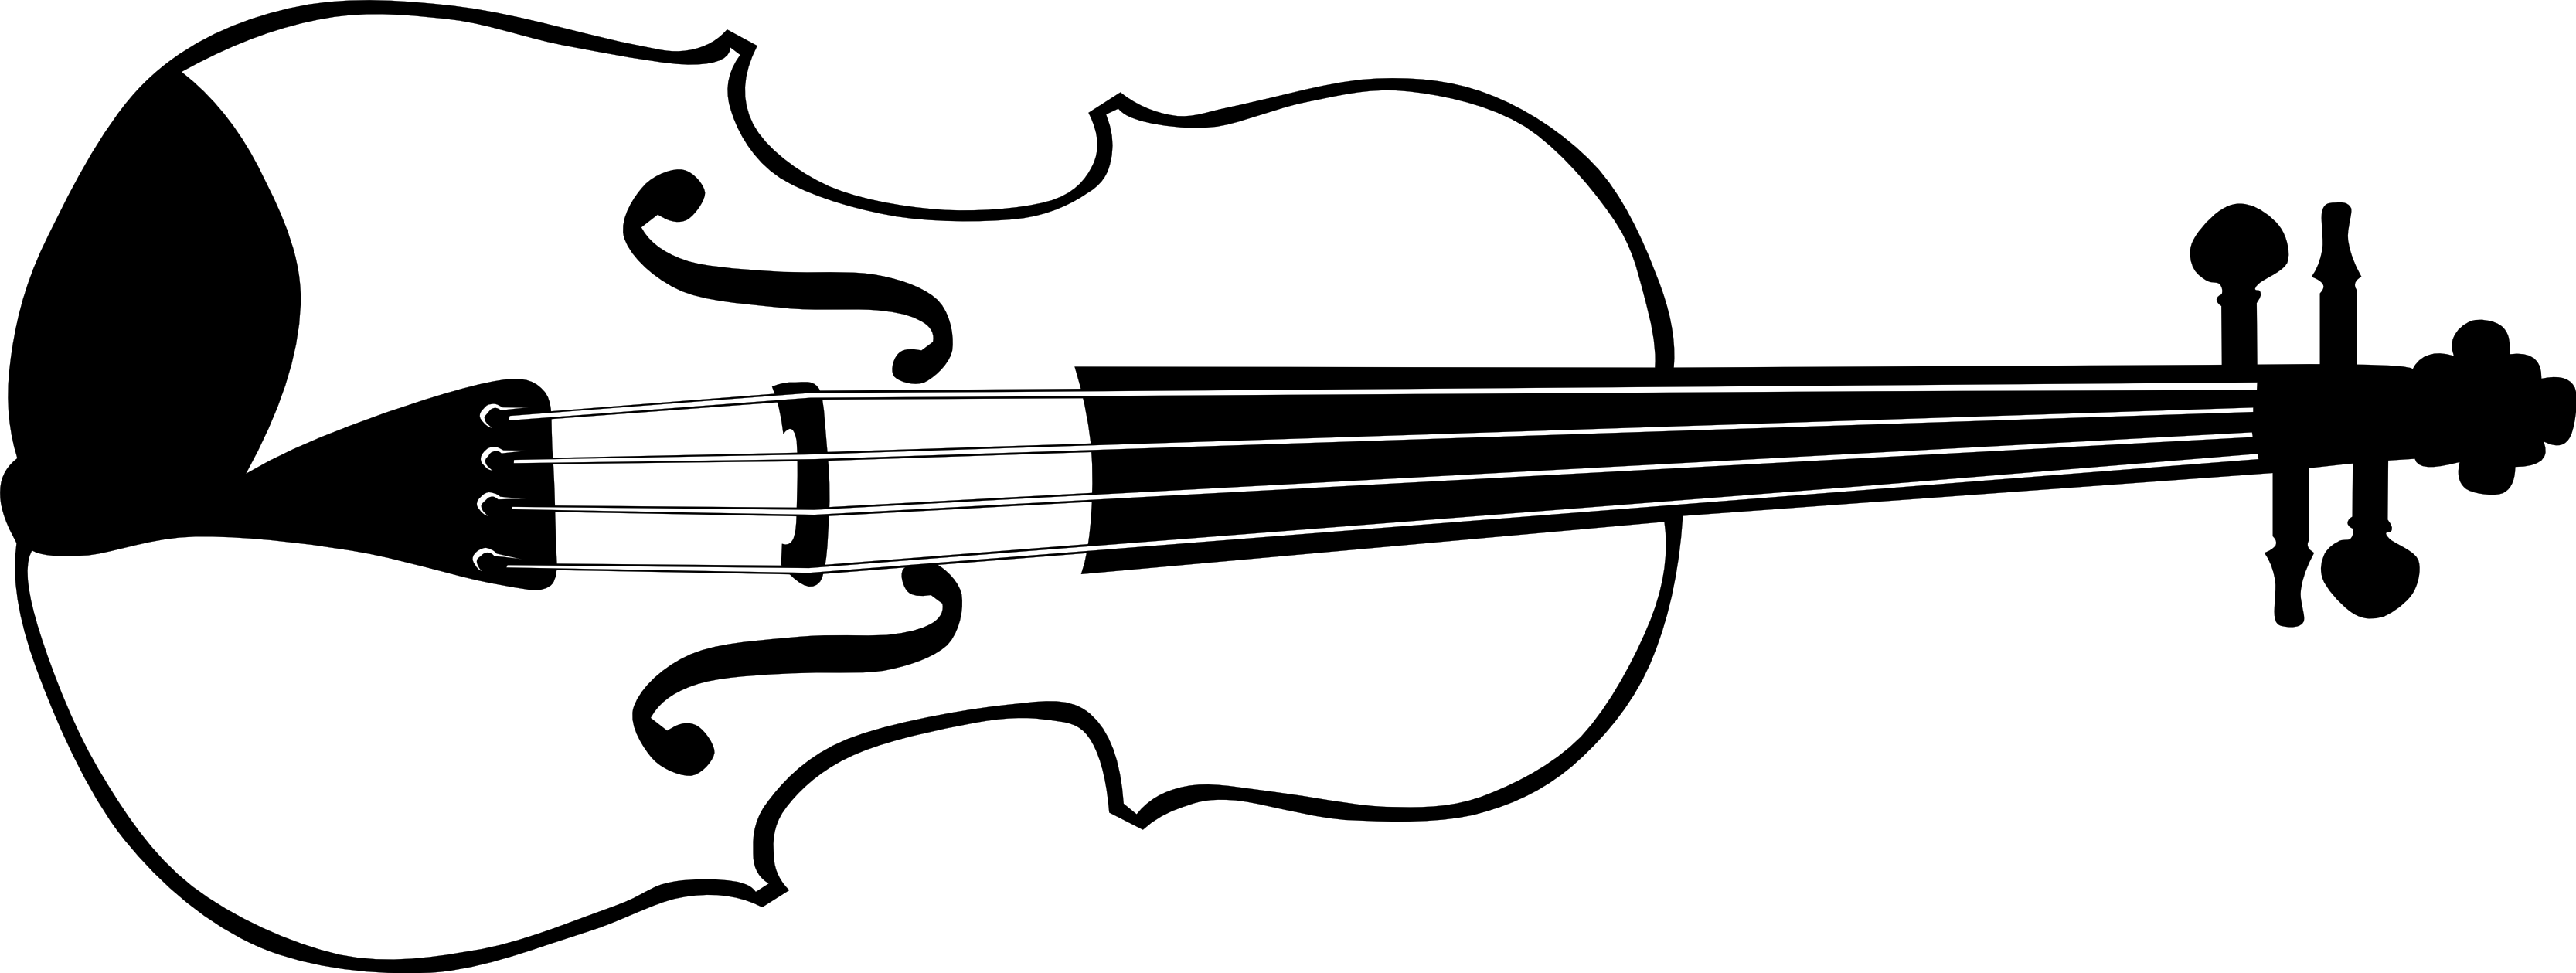 Music  black and white music instrument clipart black and white free